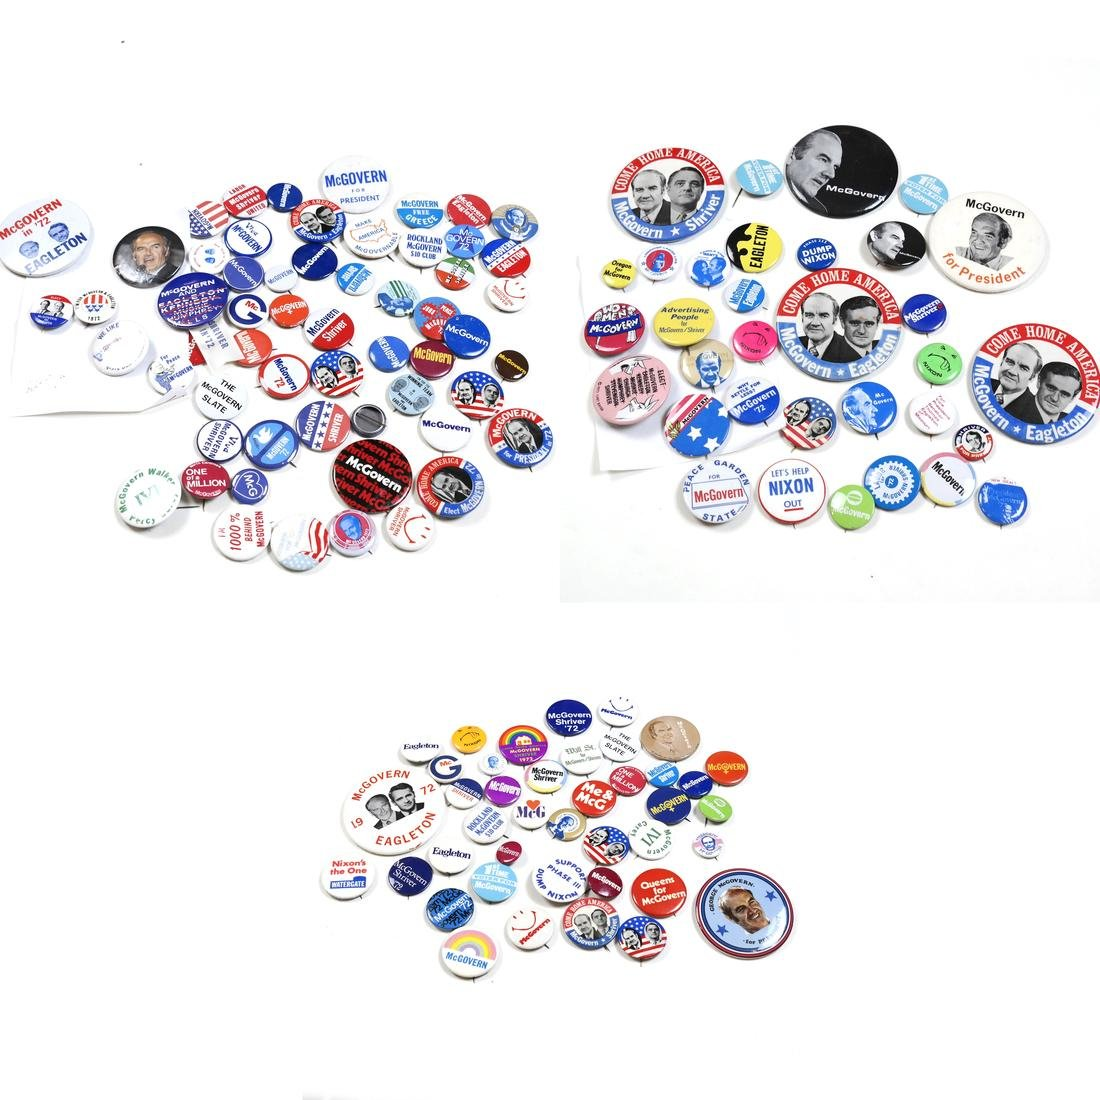 GROUP OF 1976 GEORGE MCGOVERN CAMPAIGN BUTTONS